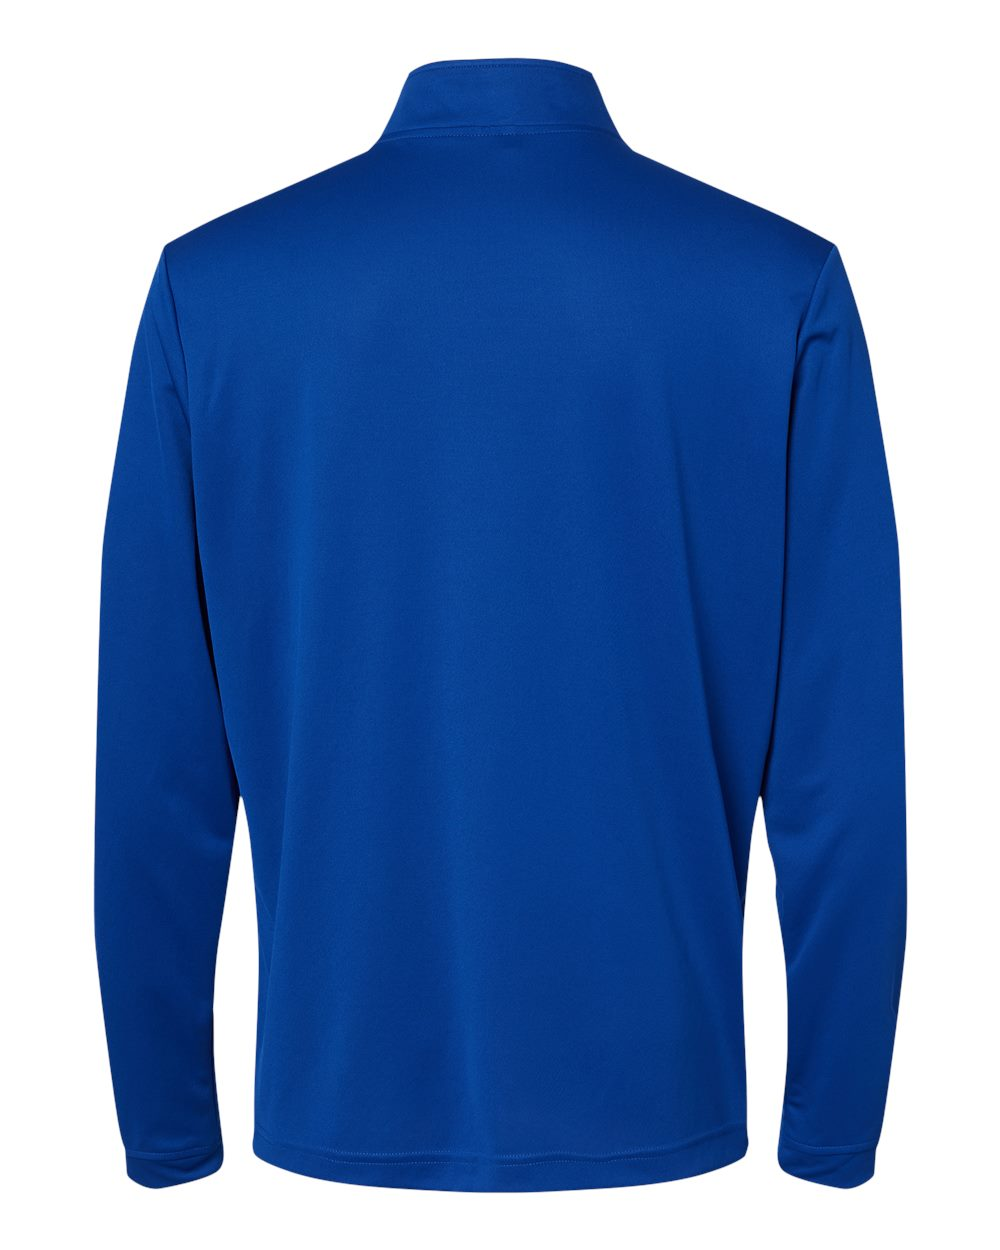 Adidas-Mens-Lightweight-Quarter-Zip-Pullover-Shirt-polyester-A401-up-to-4XL miniature 16